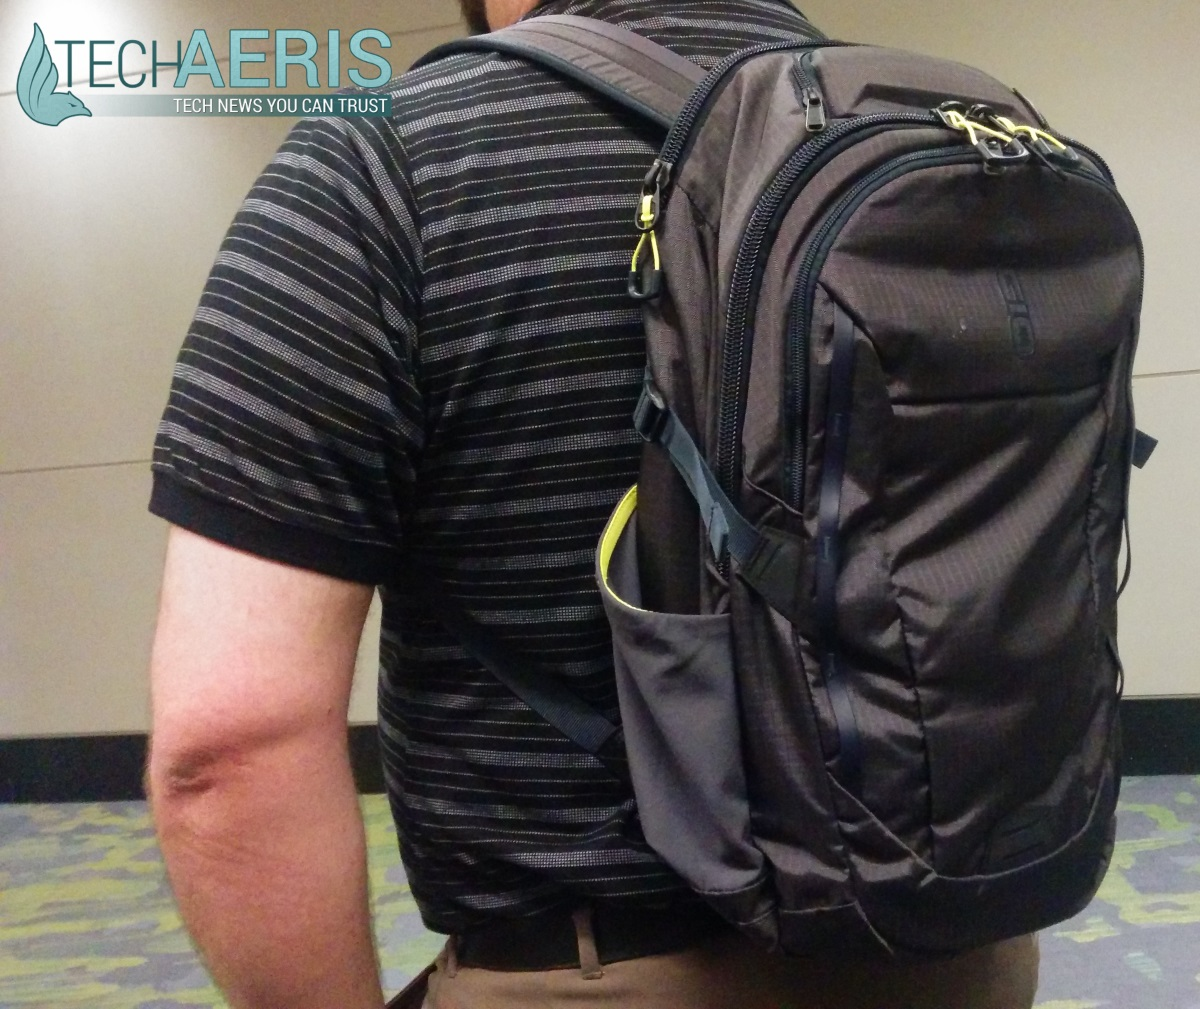 OGIO Ascent Review: A Slim Backpack That Holds And Protects Your Gear